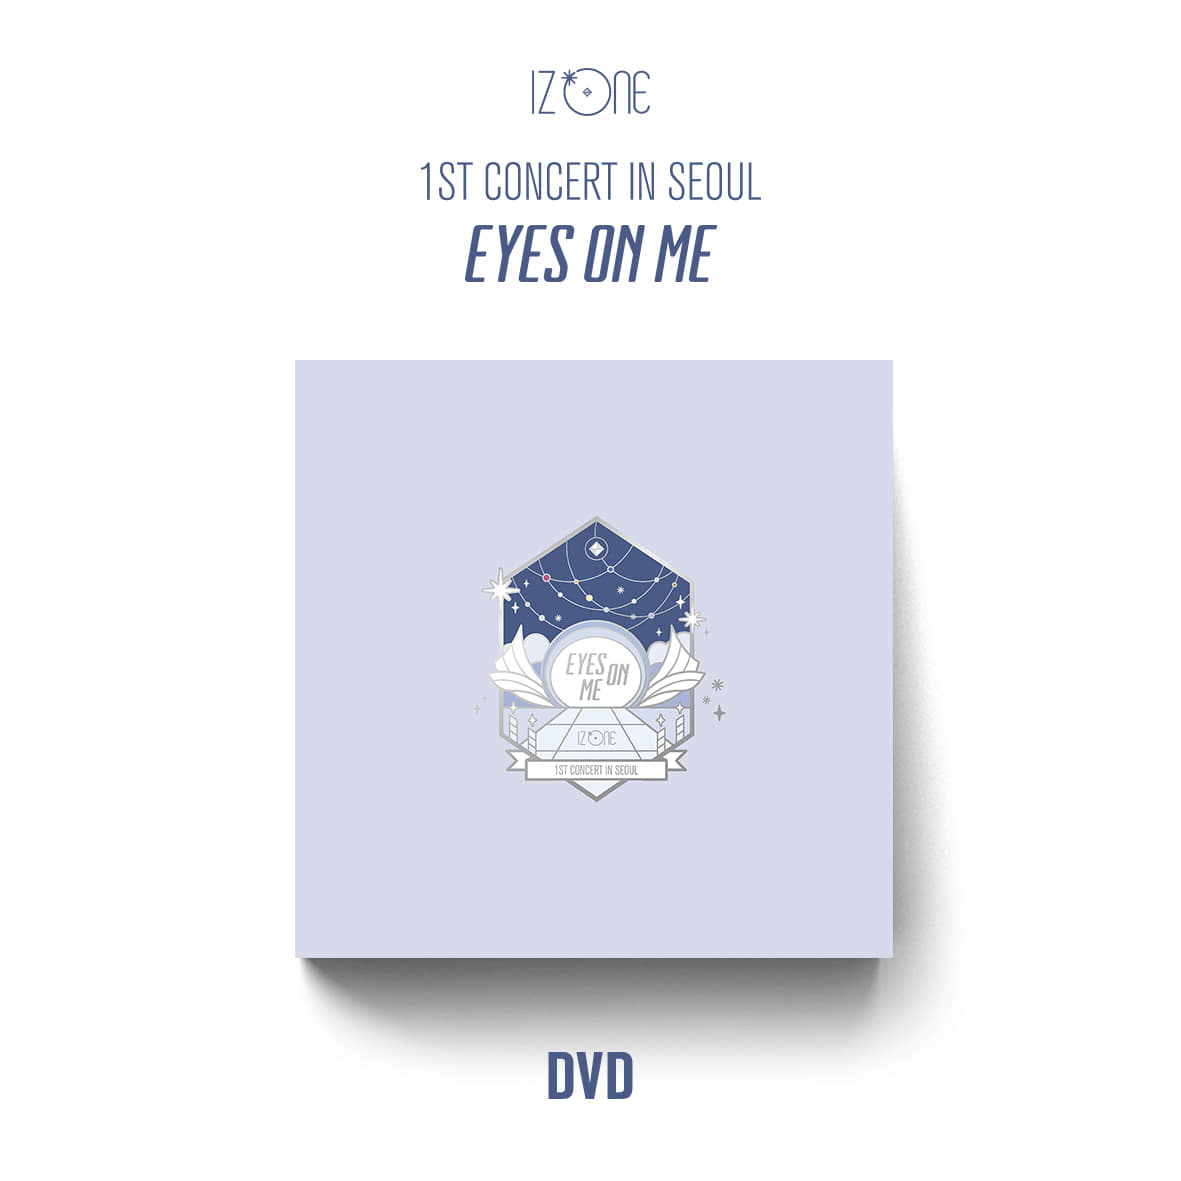 아이즈원(IZ*ONE) - 1ST CONCERT IN SEOUL [EYES ON ME] (DVD)